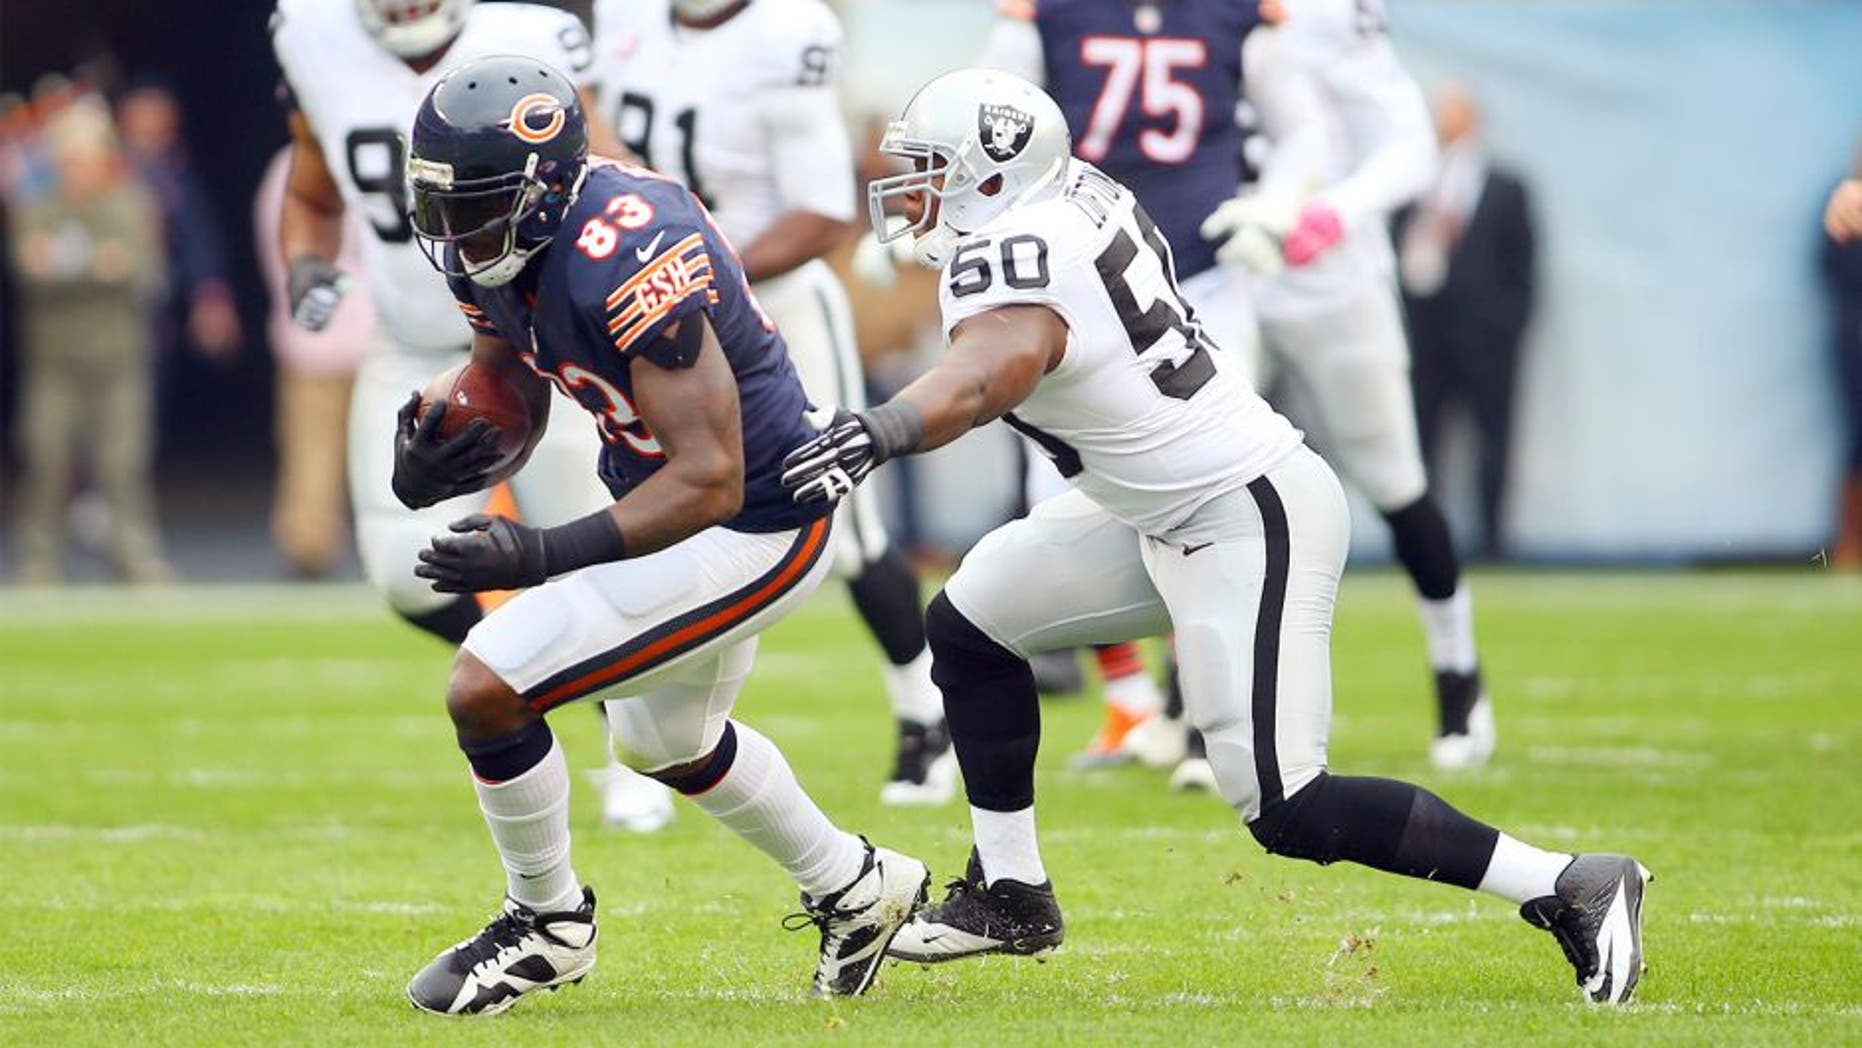 Oct 4, 2015; Chicago, IL, USA; Chicago Bears tight end Martellus Bennett (83) is tackled by Oakland Raiders middle linebacker Curtis Lofton (50) during the first quarter at Soldier Field. Mandatory Credit: Jerry Lai-USA TODAY Sports